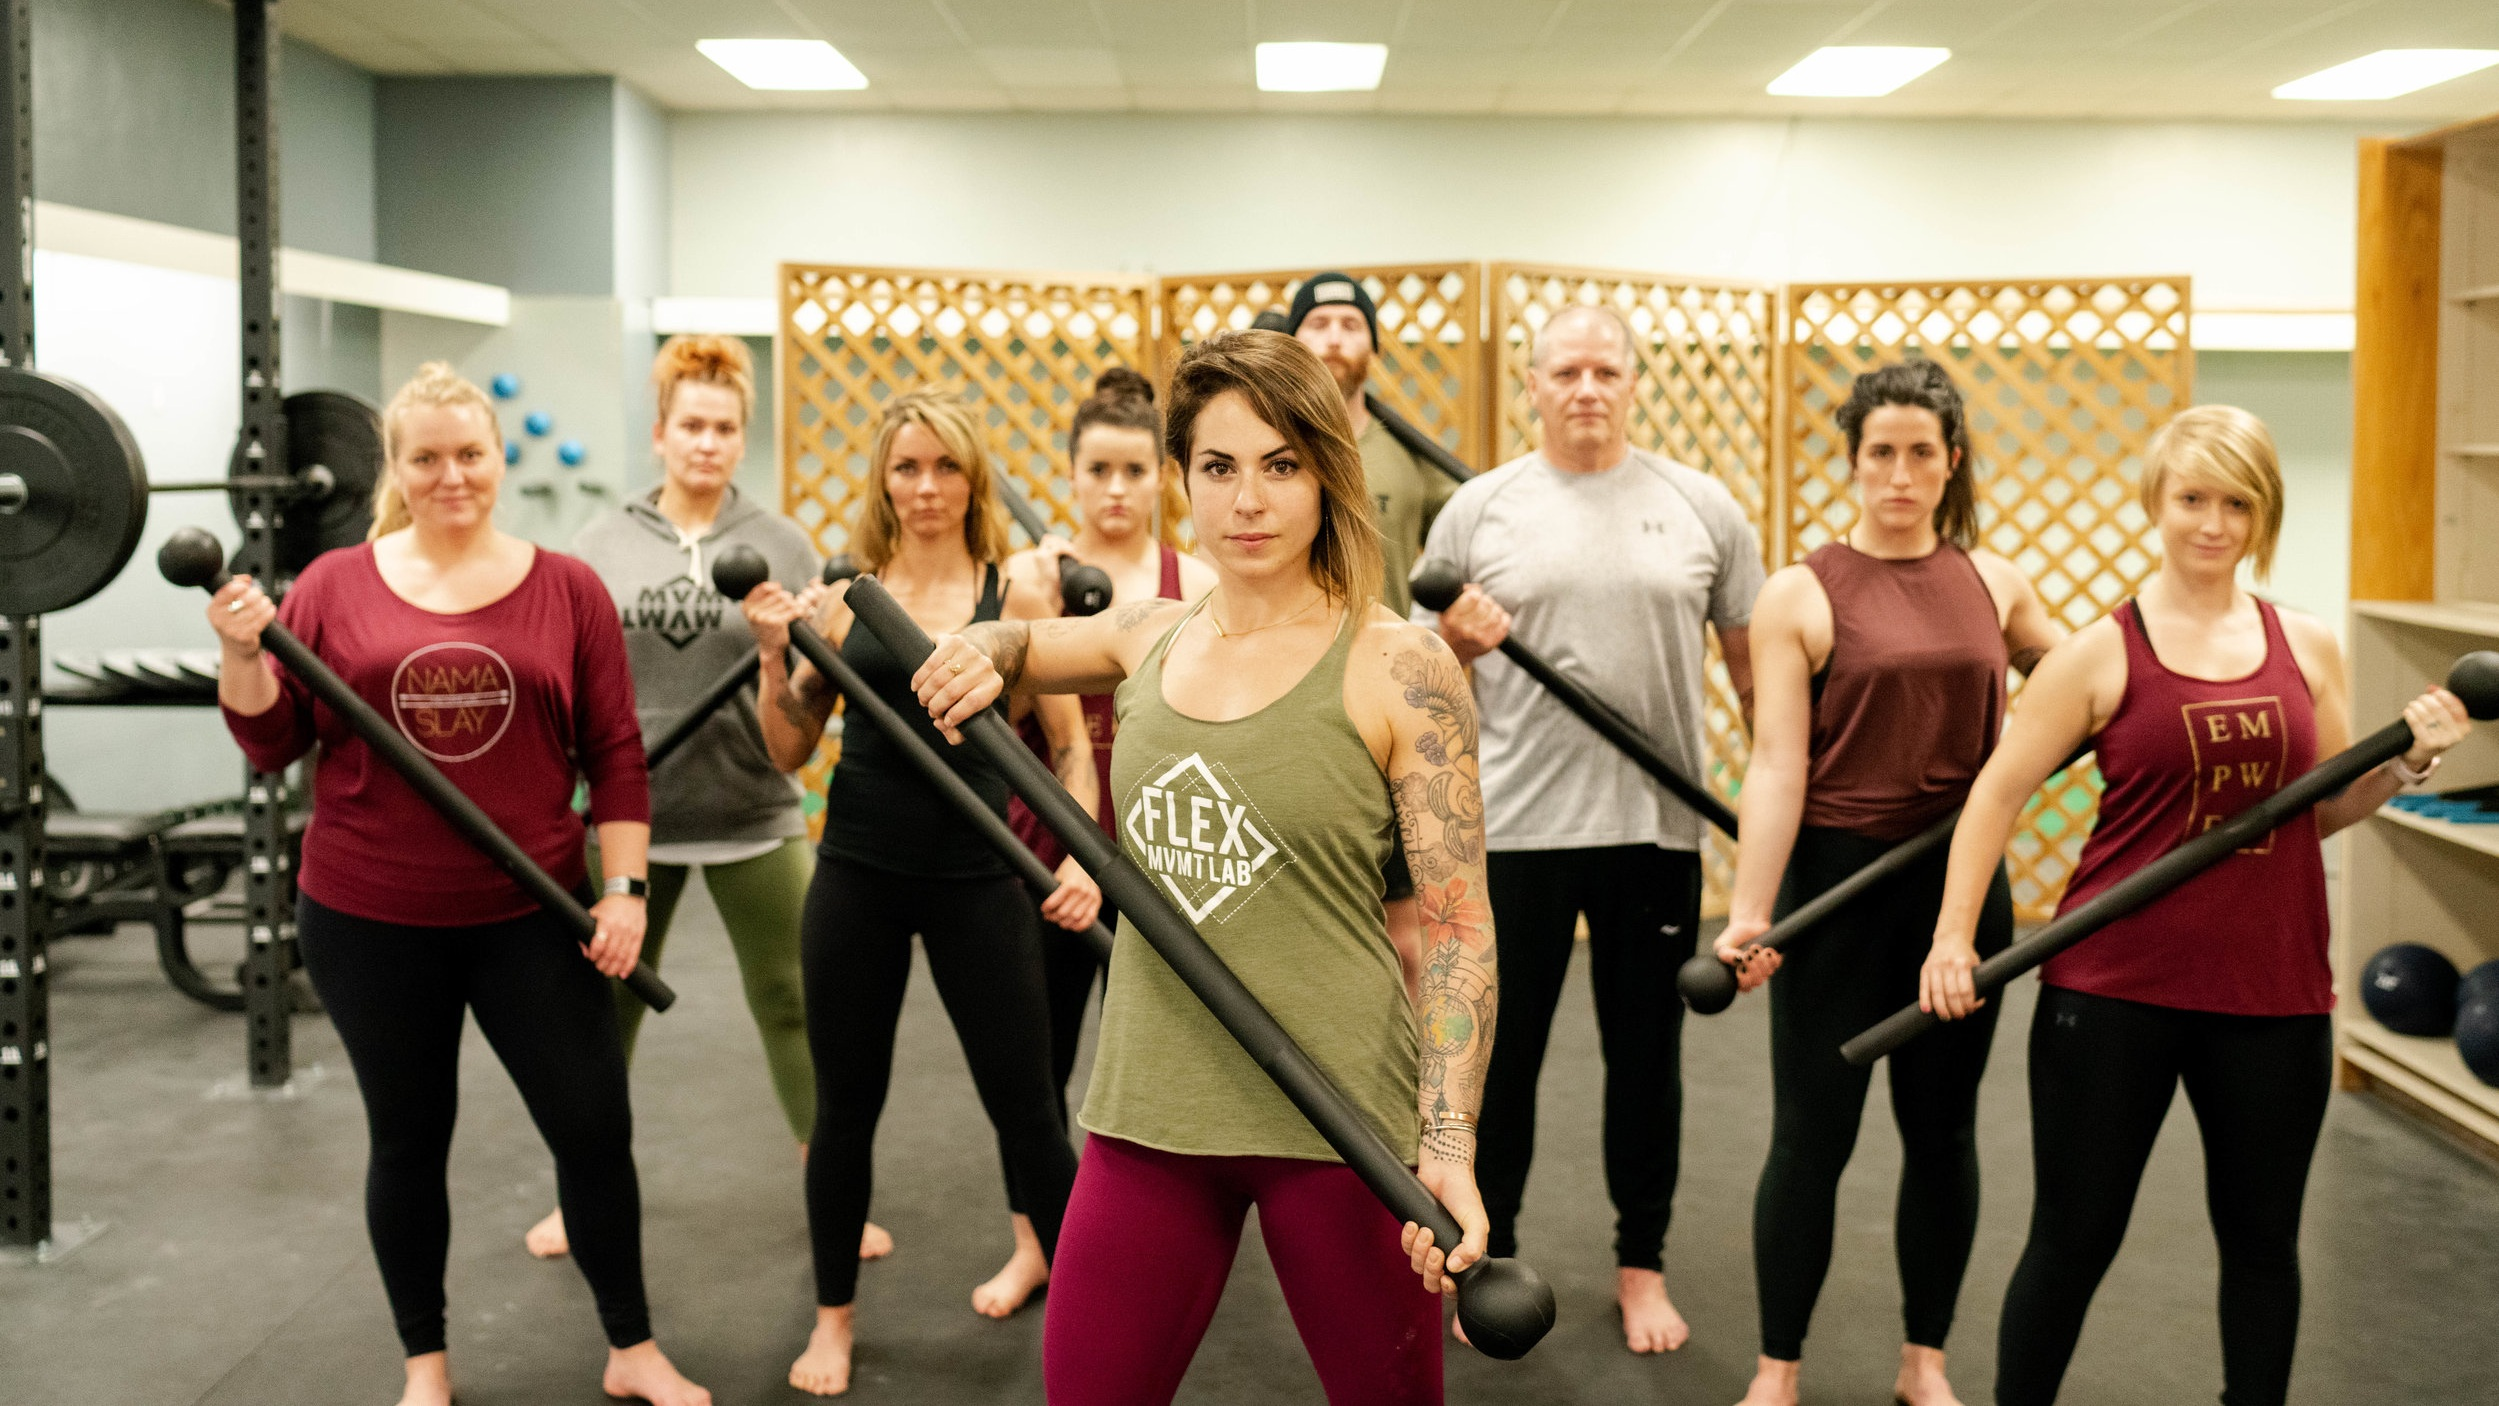 Steel Mace - Tap into your inner warrior with this fun class that combines modern athletics with ancient wisdom. We'll cover the basics of use and flow, developing a workout that mimics and supports the movement patterns we use in everyday life.Quickly becoming one of the most popular tools for functional fitness.